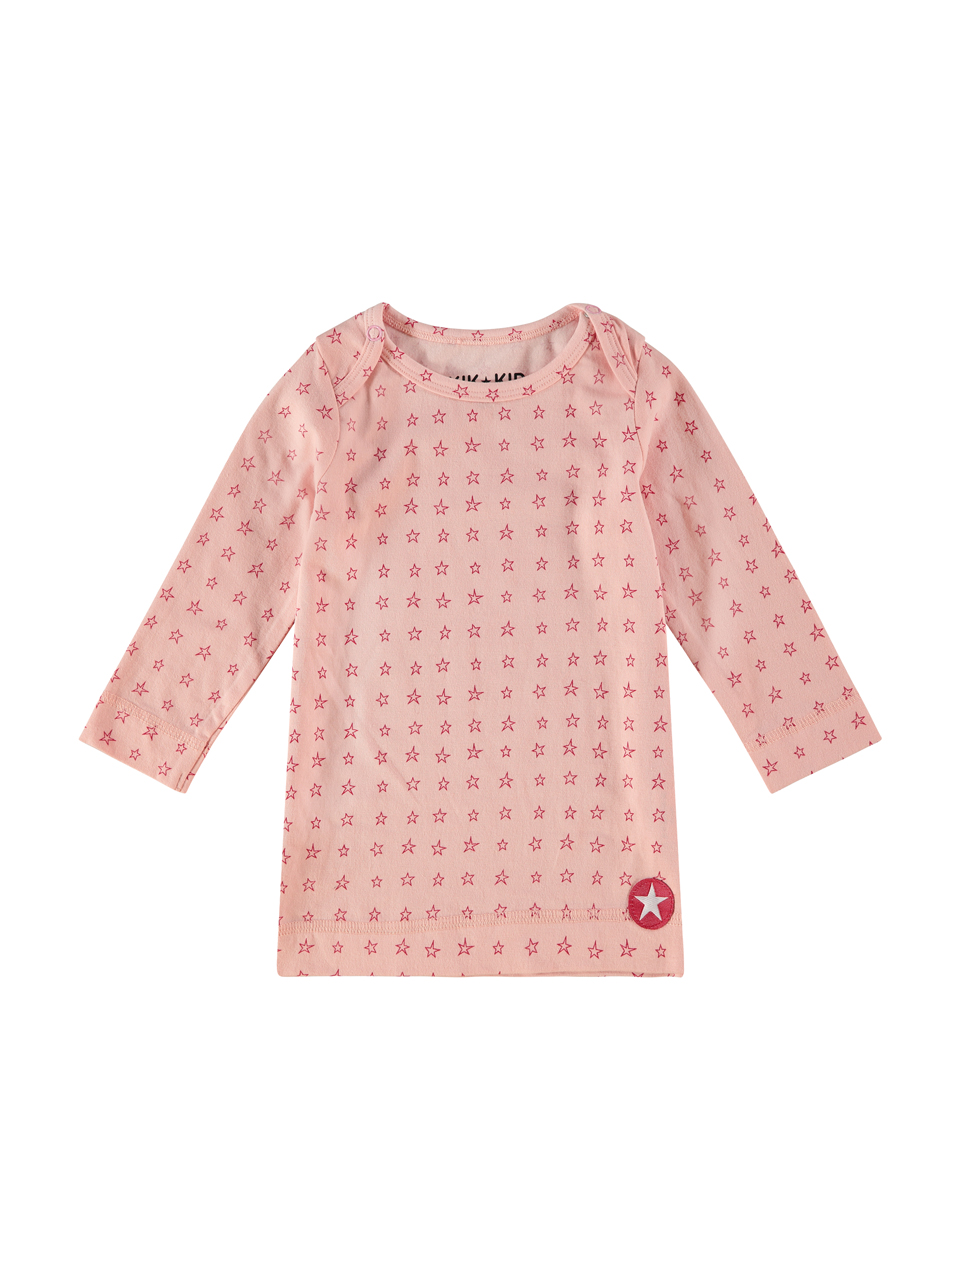 ORGANIC COTTON dress jersey - lpink